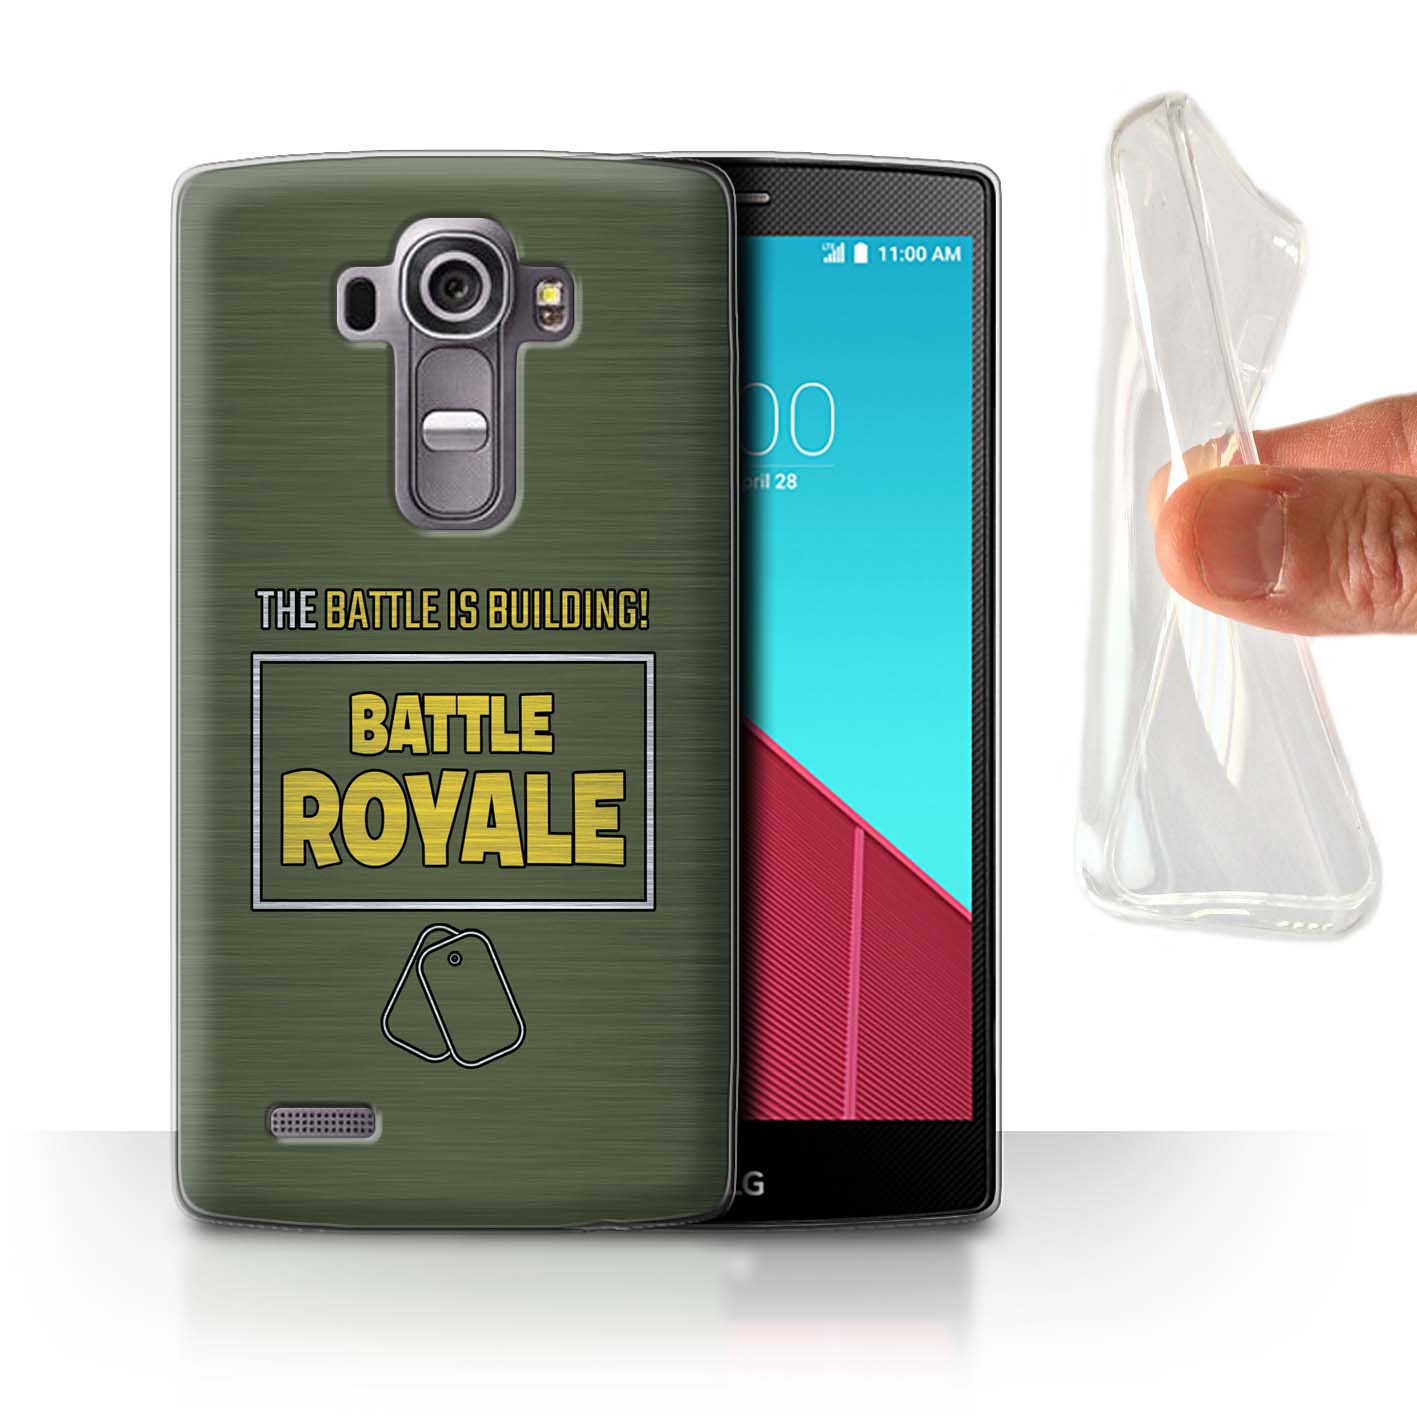 STUFF4-Gel-TPU-Phone-Case-for-LG-G4-H815-H818-FN-Battle-Royale